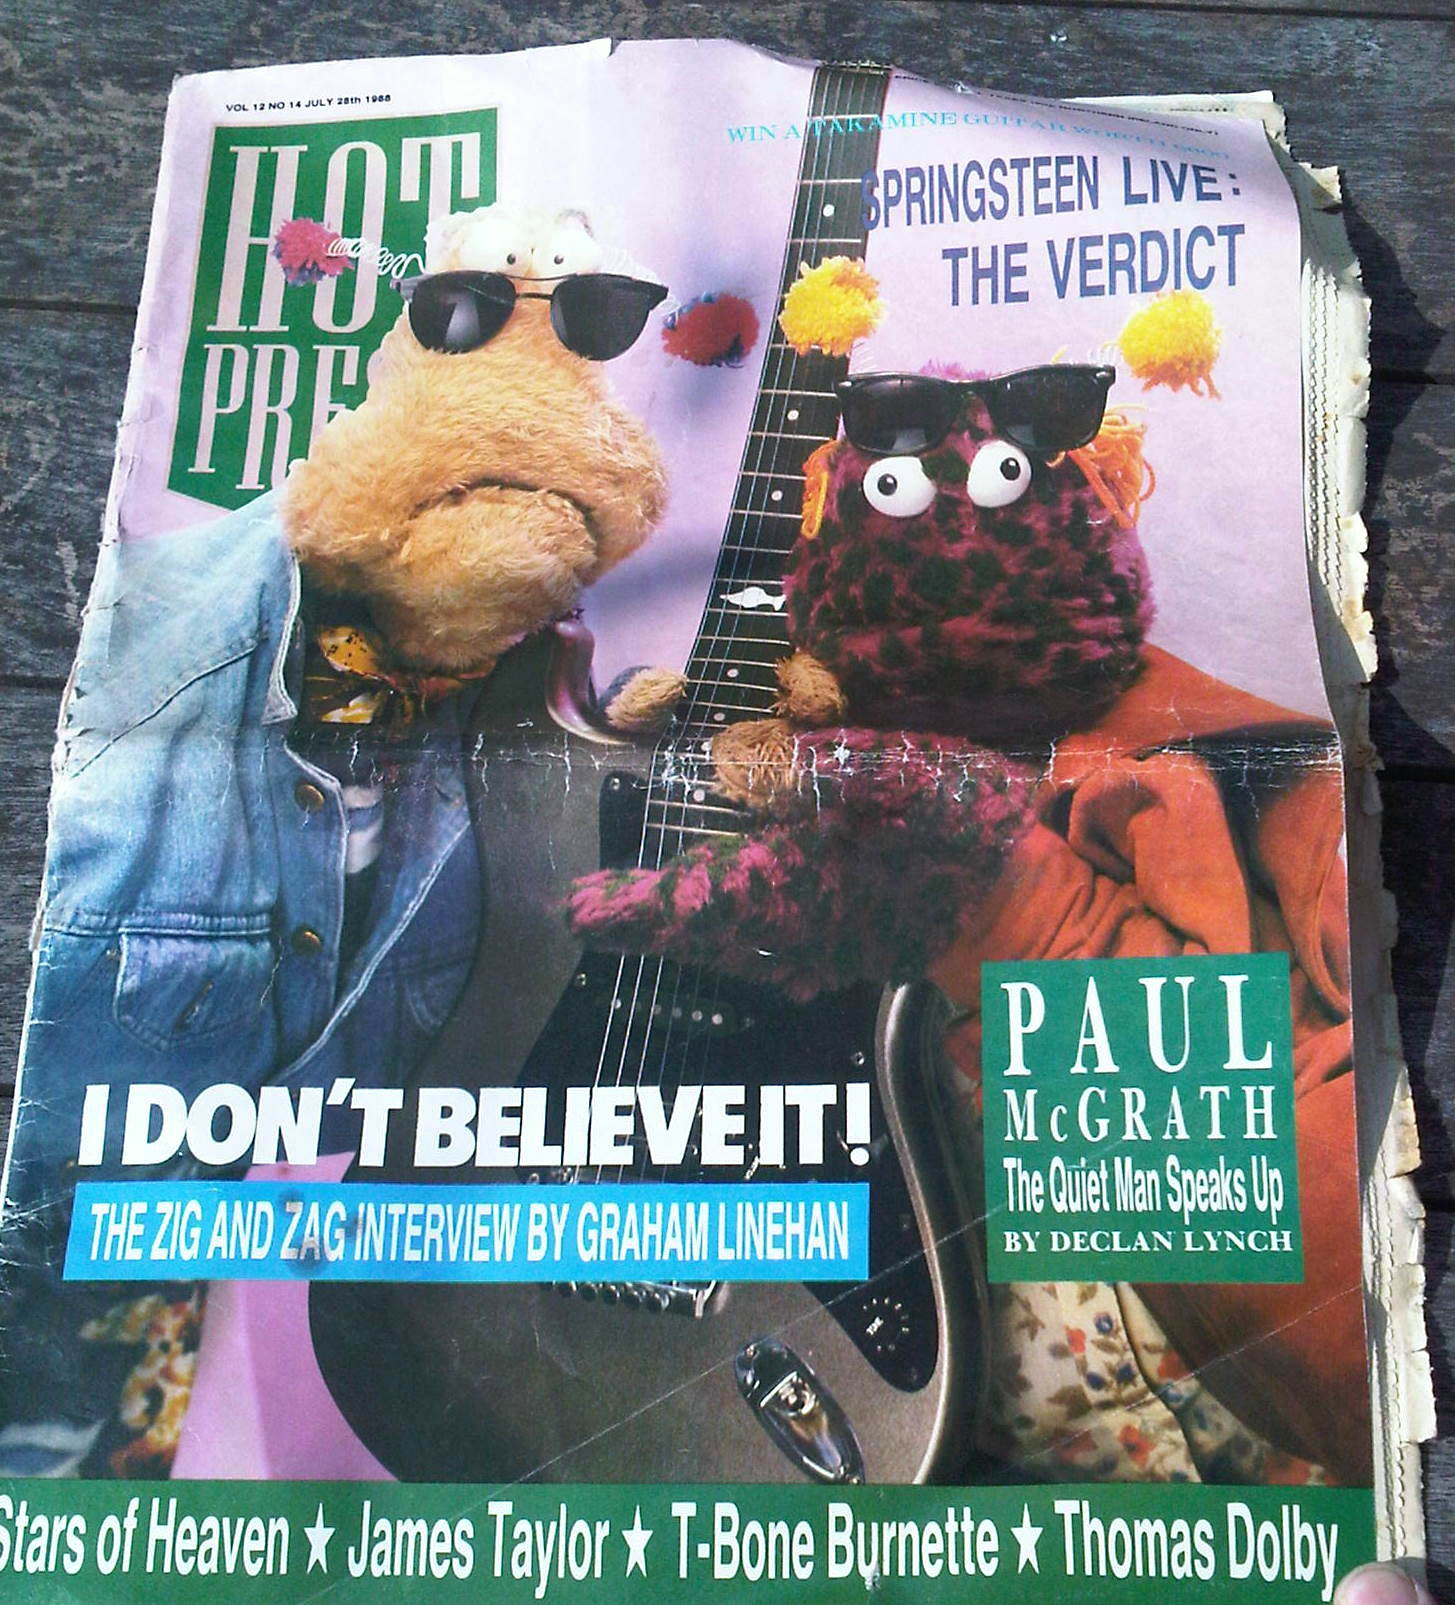 Hot Press July 1988 - Zig & Zag interview by Graham Linehan